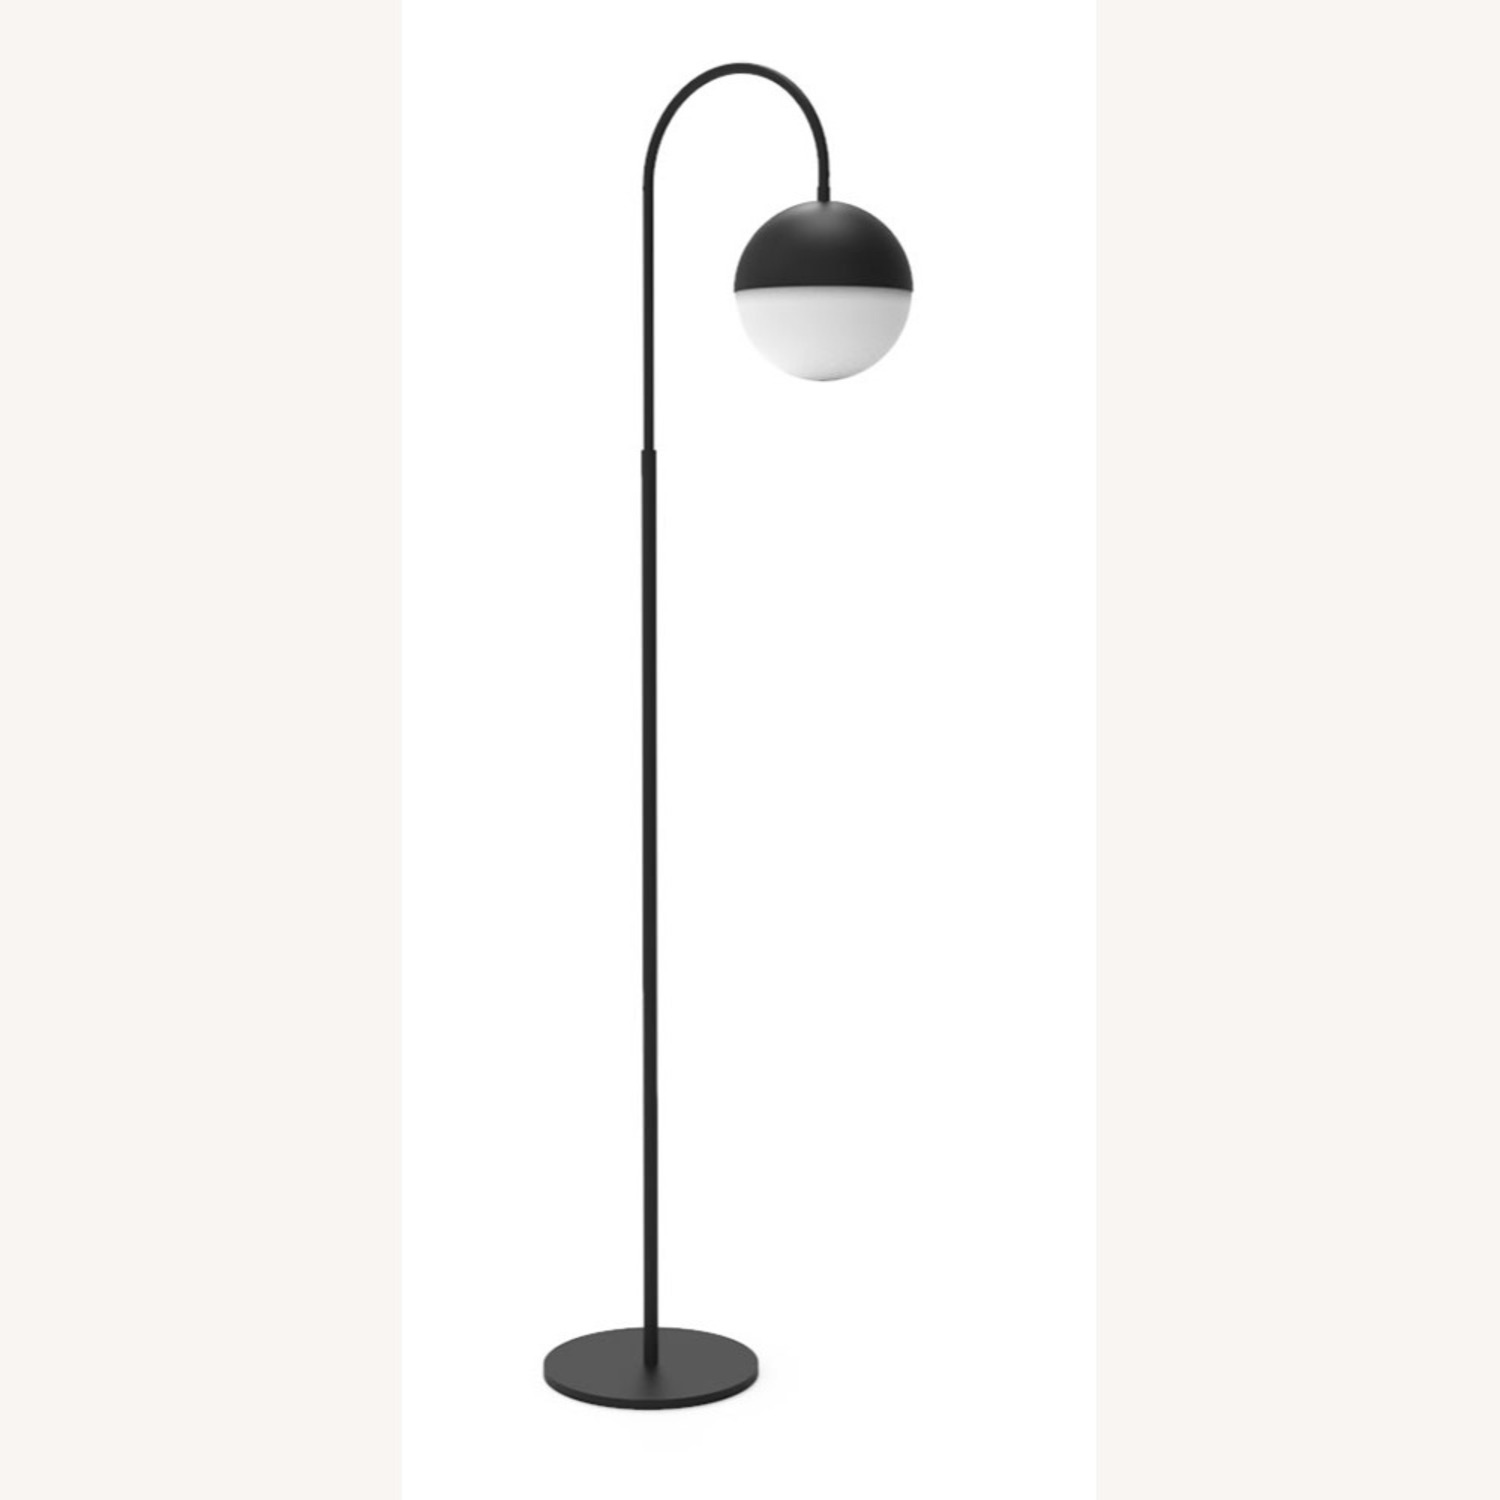 Blueground Floor Lamp Black - image-1